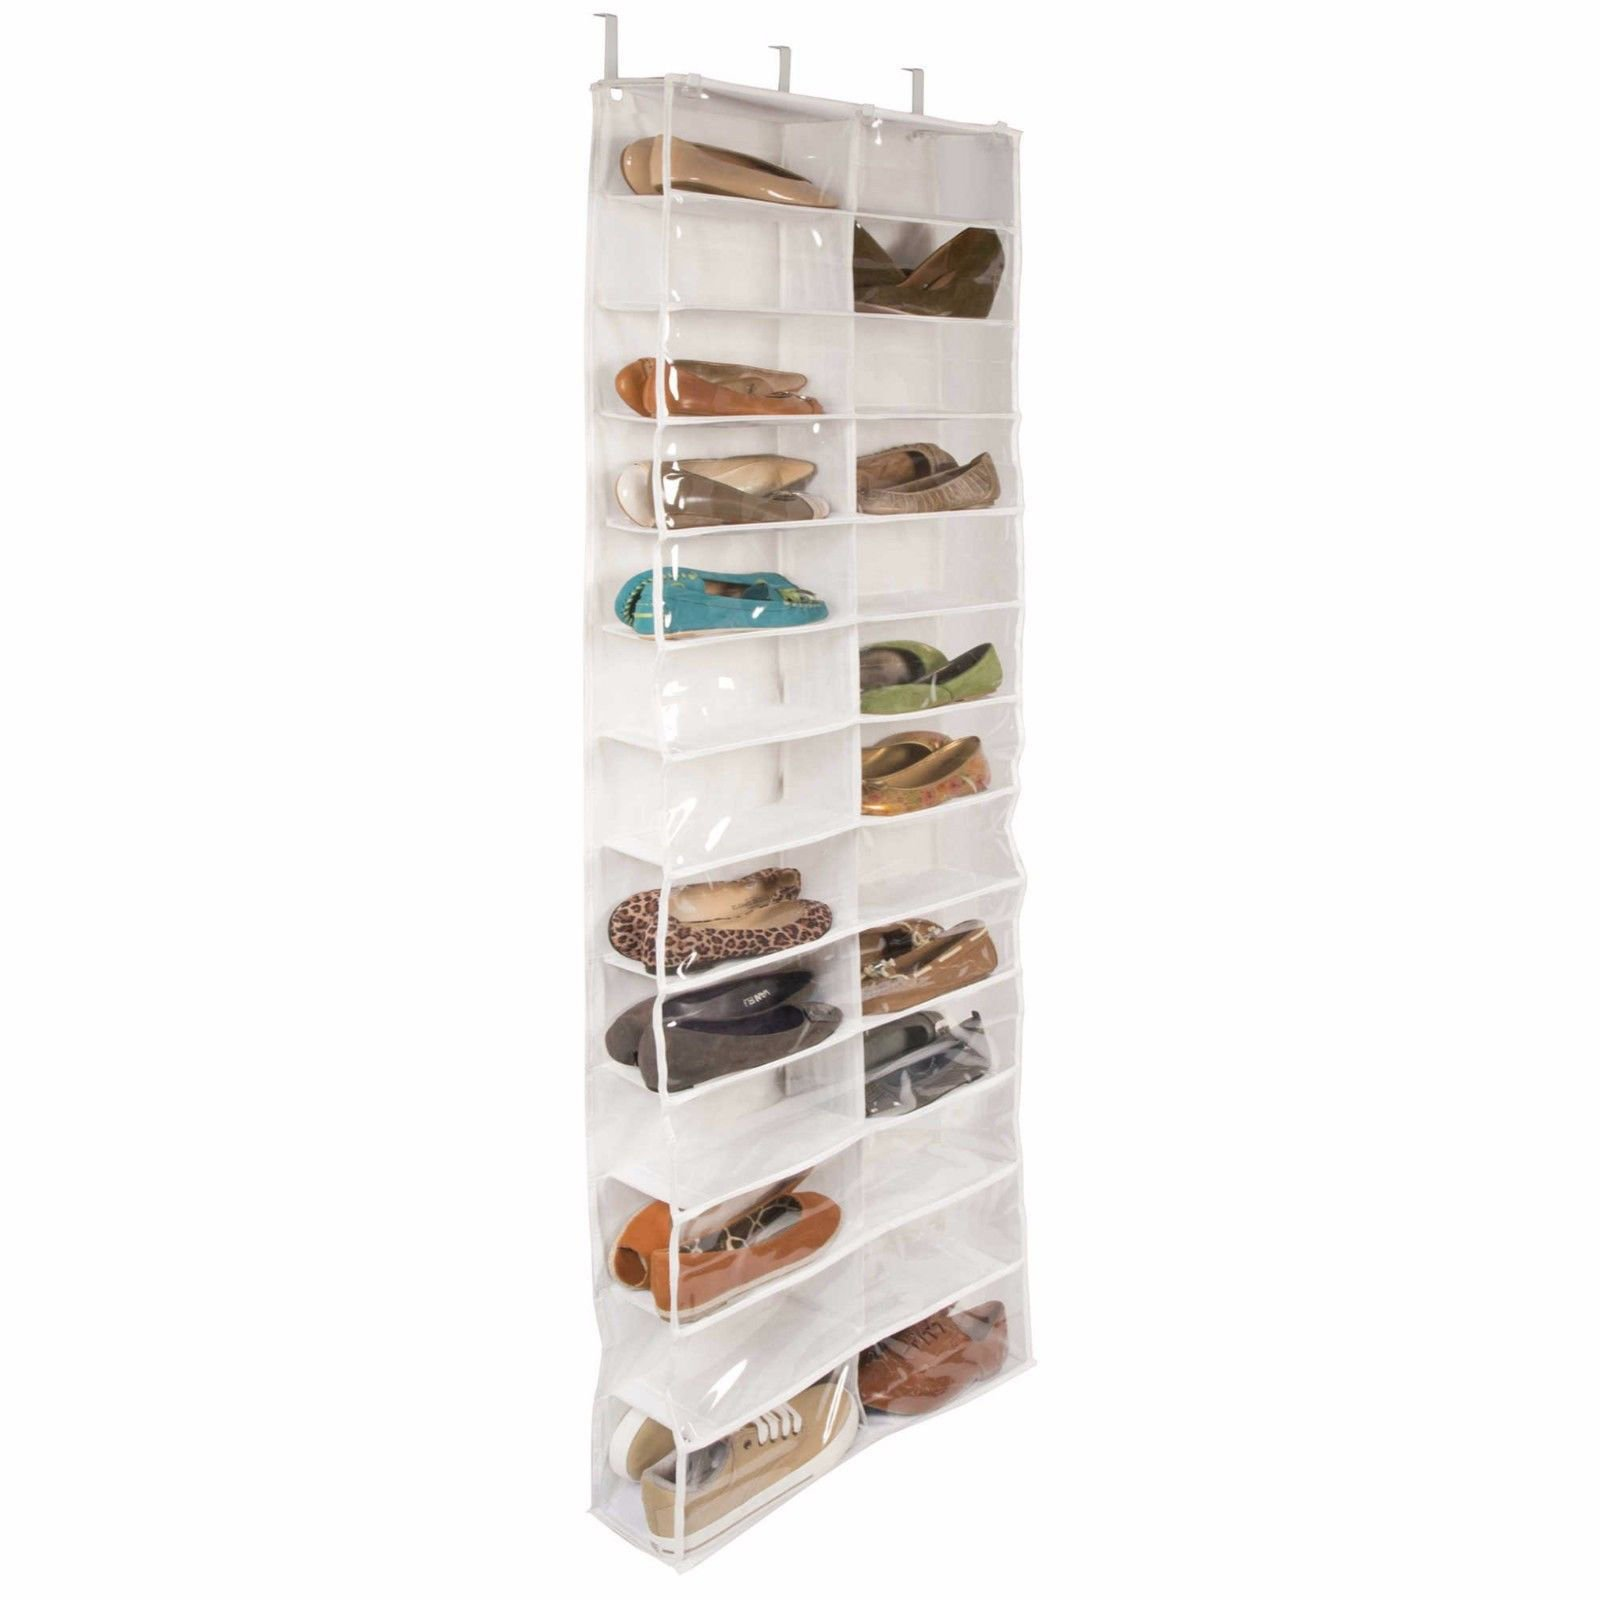 Shoe Door Over Rack Hanging 26 Organizer Storage Pocket Saver Space Hanger Holder Clear Wall